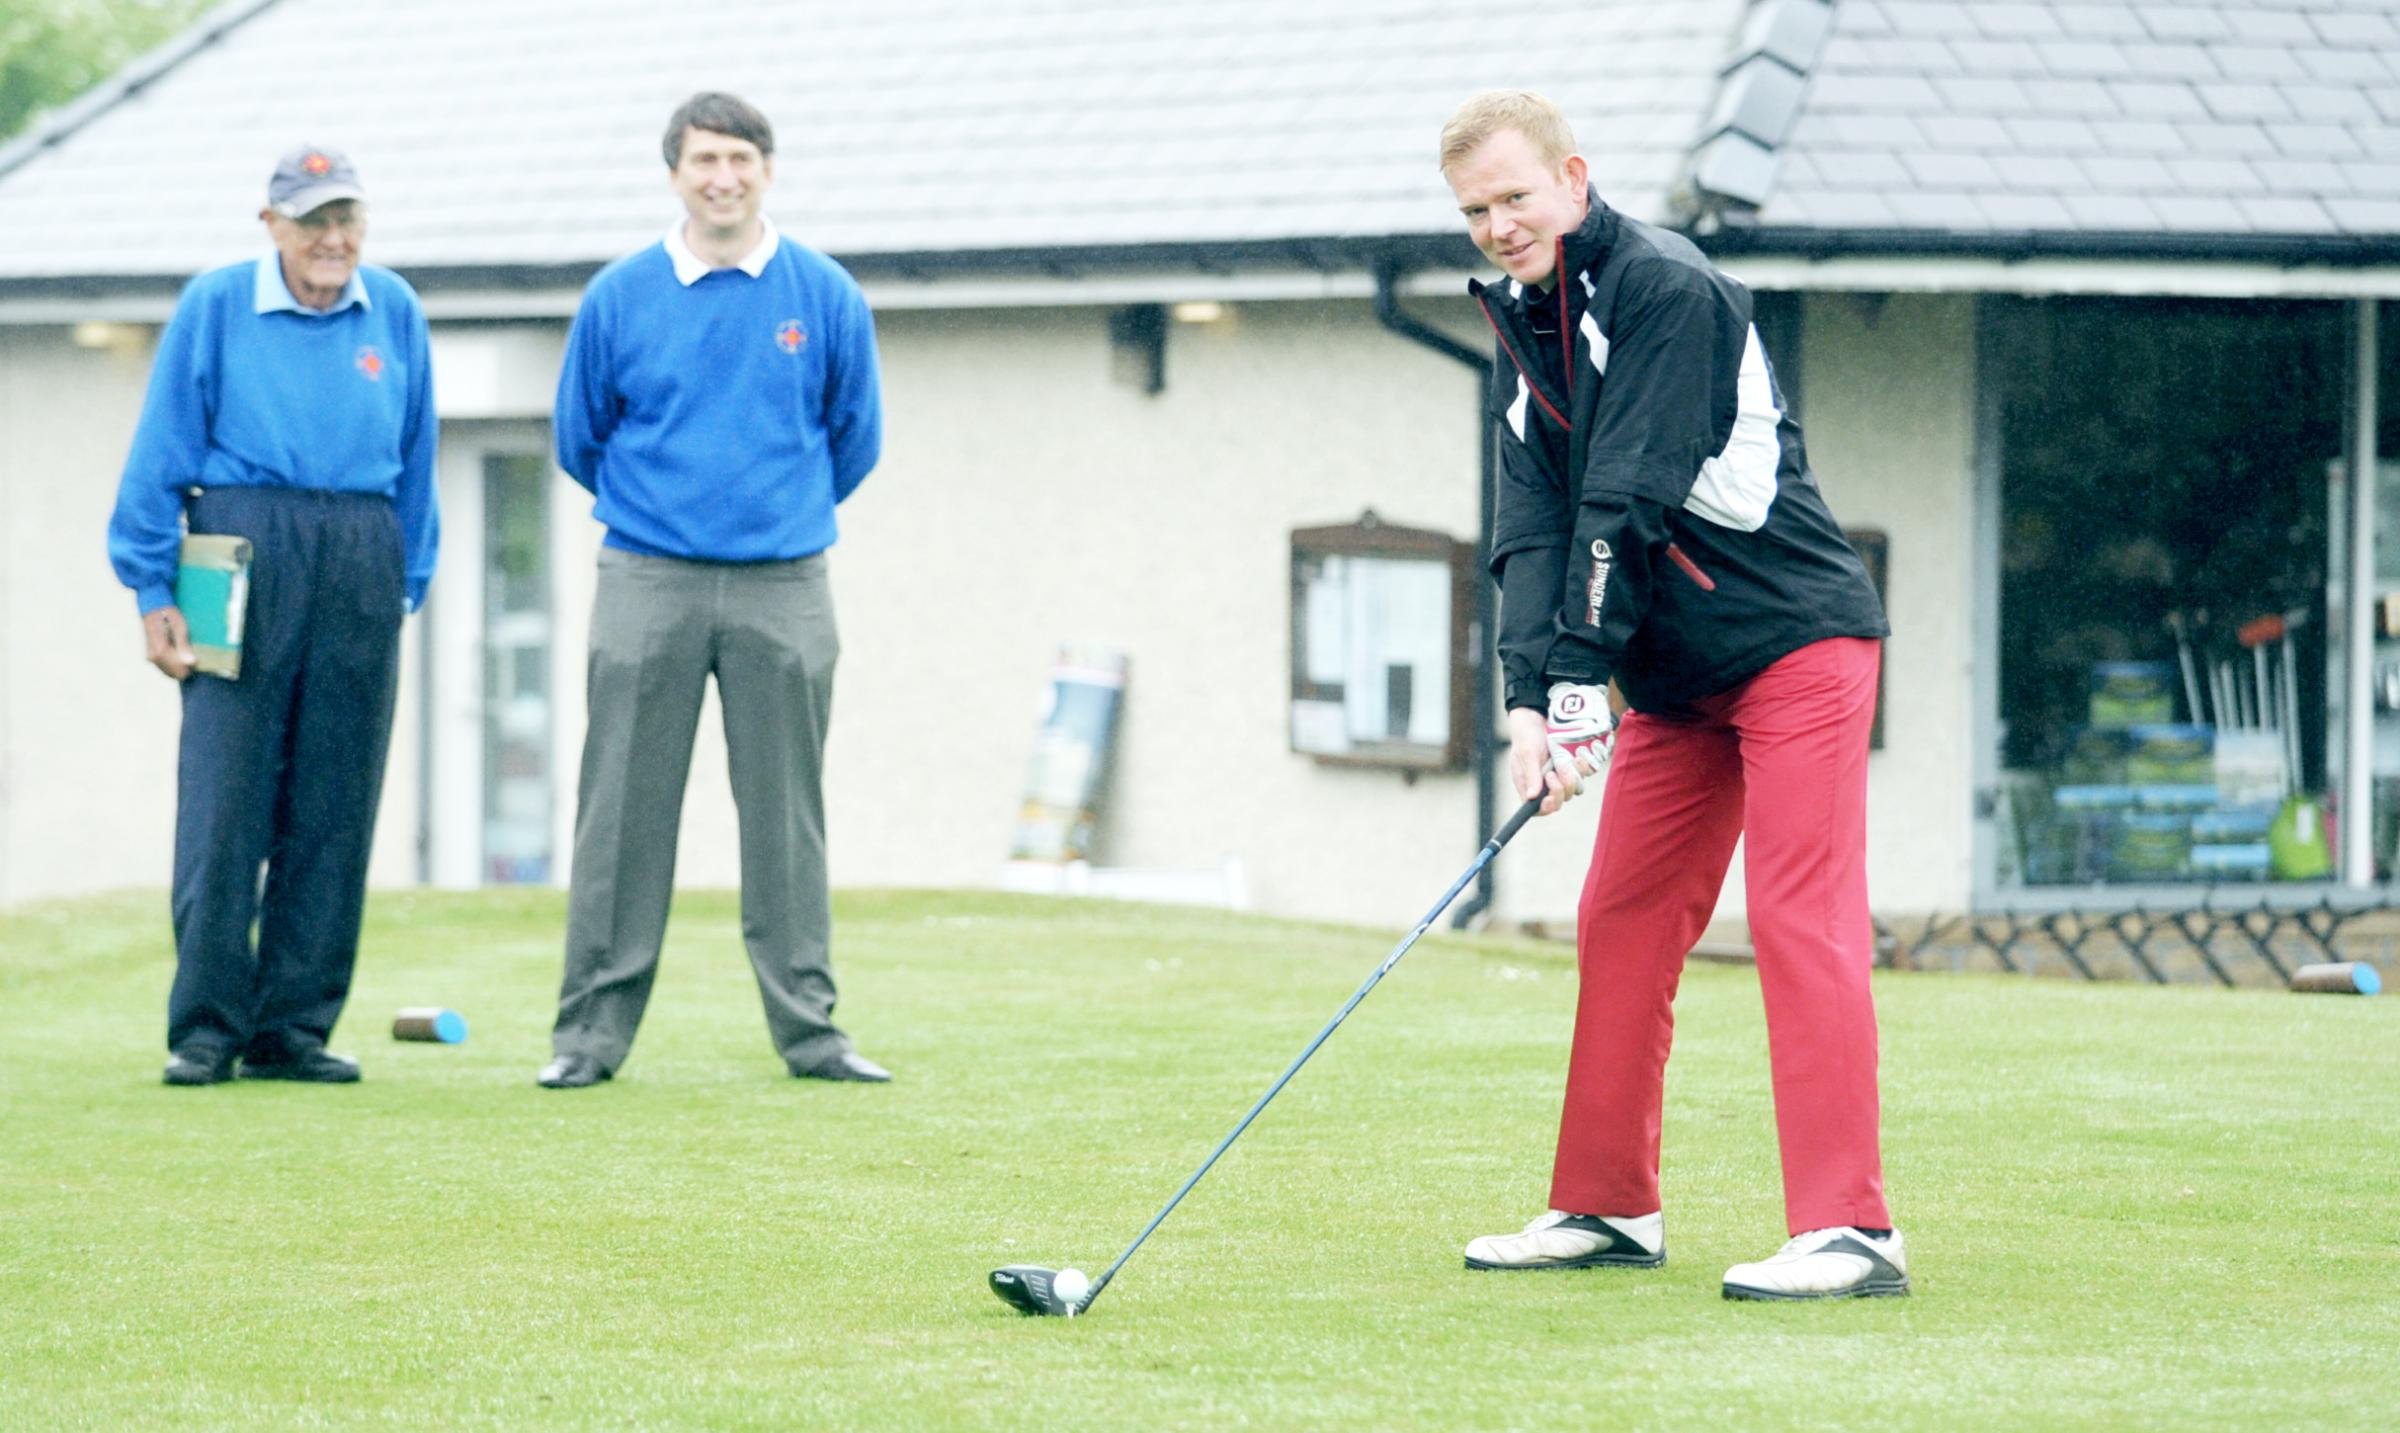 Harold Ryden trophy golf competition at Pleasington Golf Club